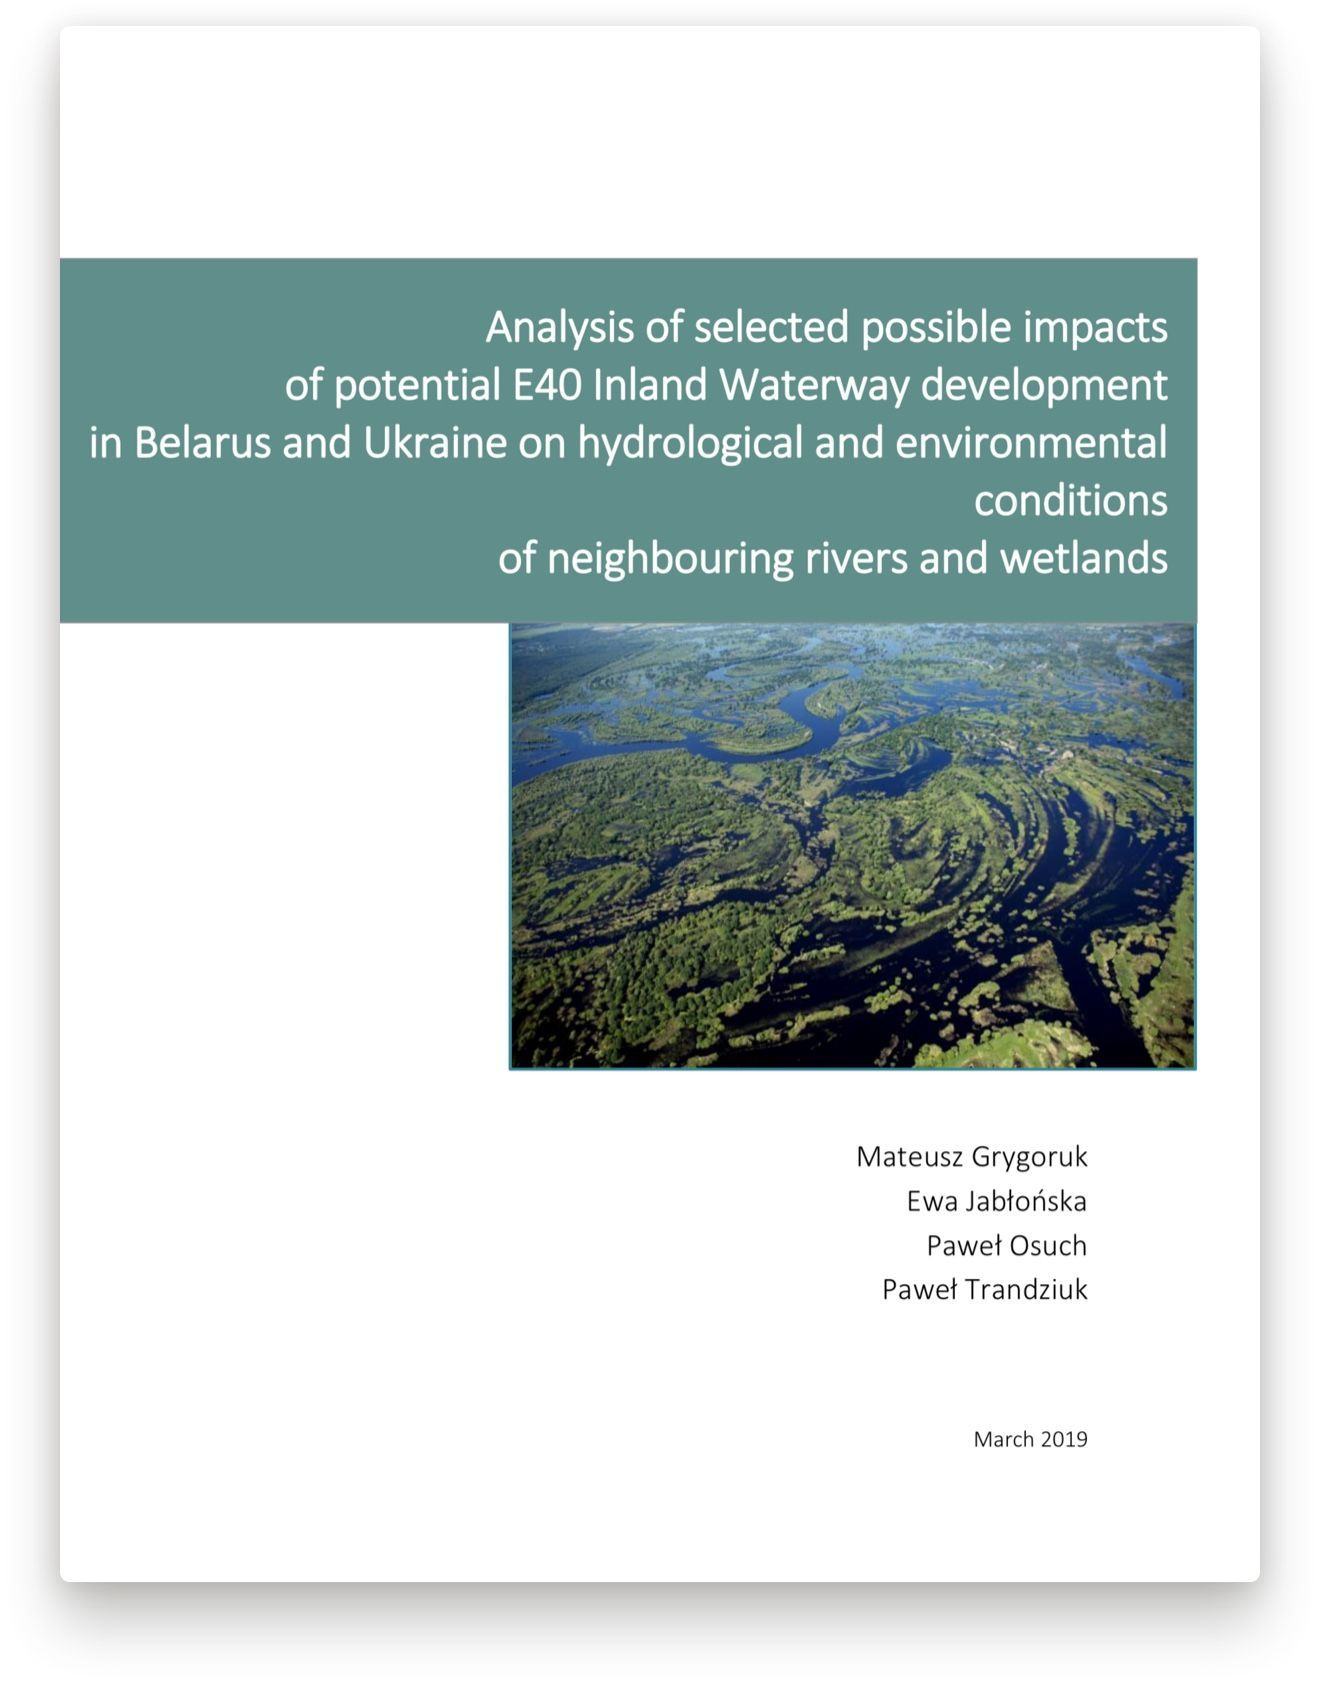 Analysis of selected possible impacts of potential E40 Inland Waterway development in Belarus and Ukraine on hydrological and environmental conditions of neighbouring rivers and wetlands, PDF (4.86 MB)